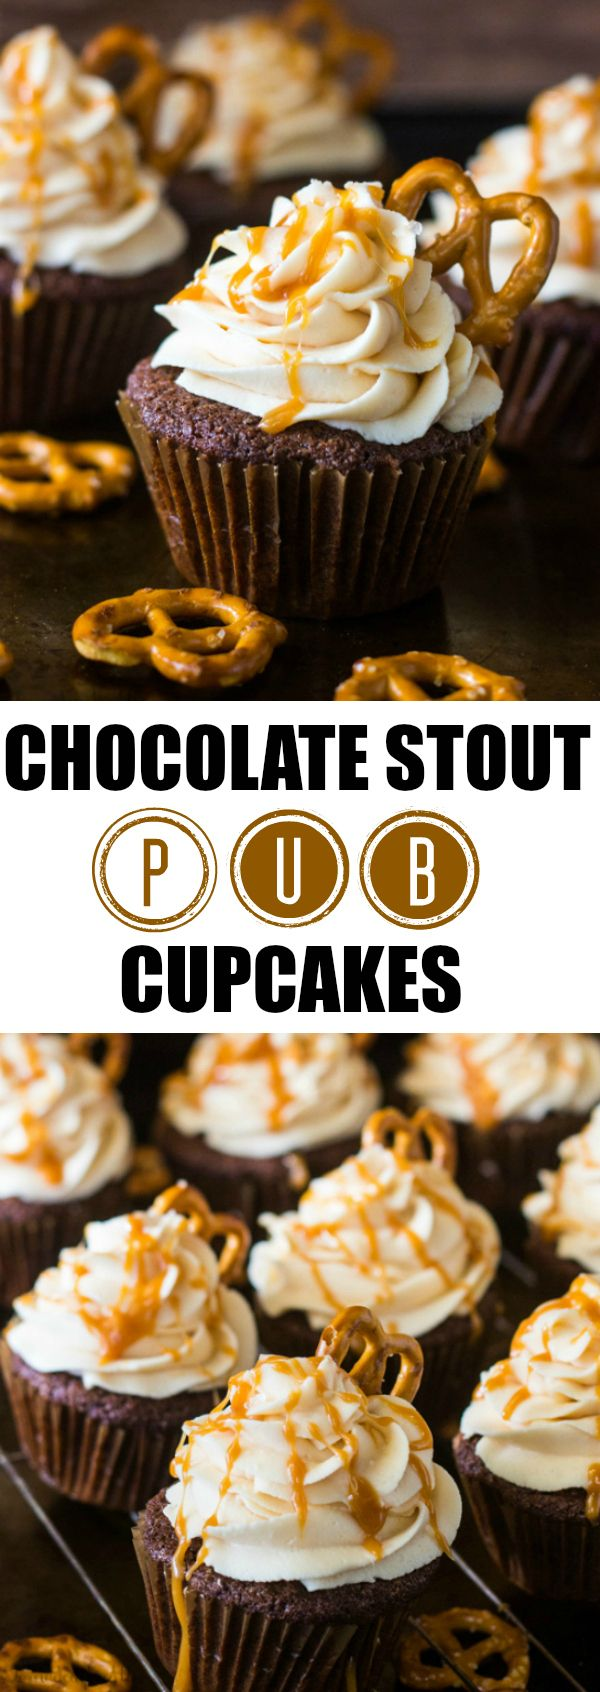 Chocolate Stout Pub Cupcakes are a fave for game day with its salty sweet deliciousness!